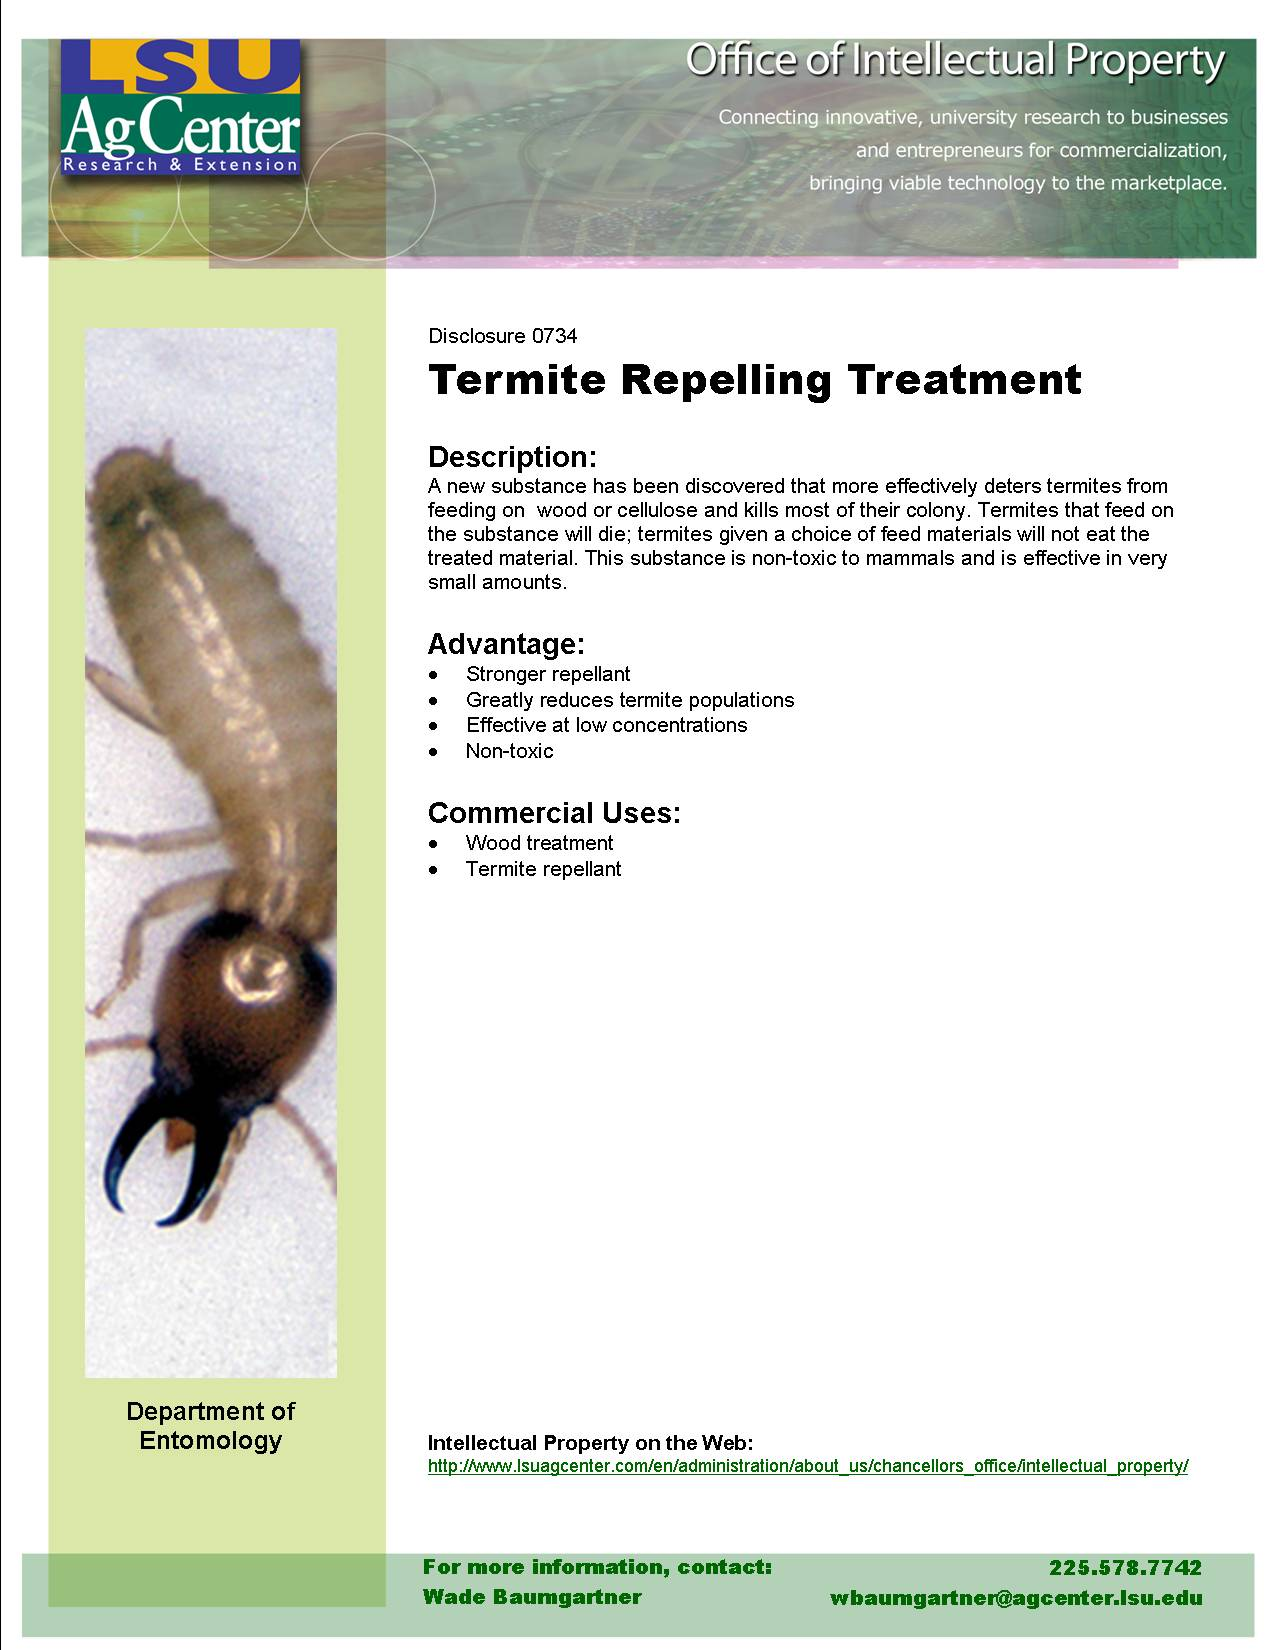 Unique Termite Deterrent